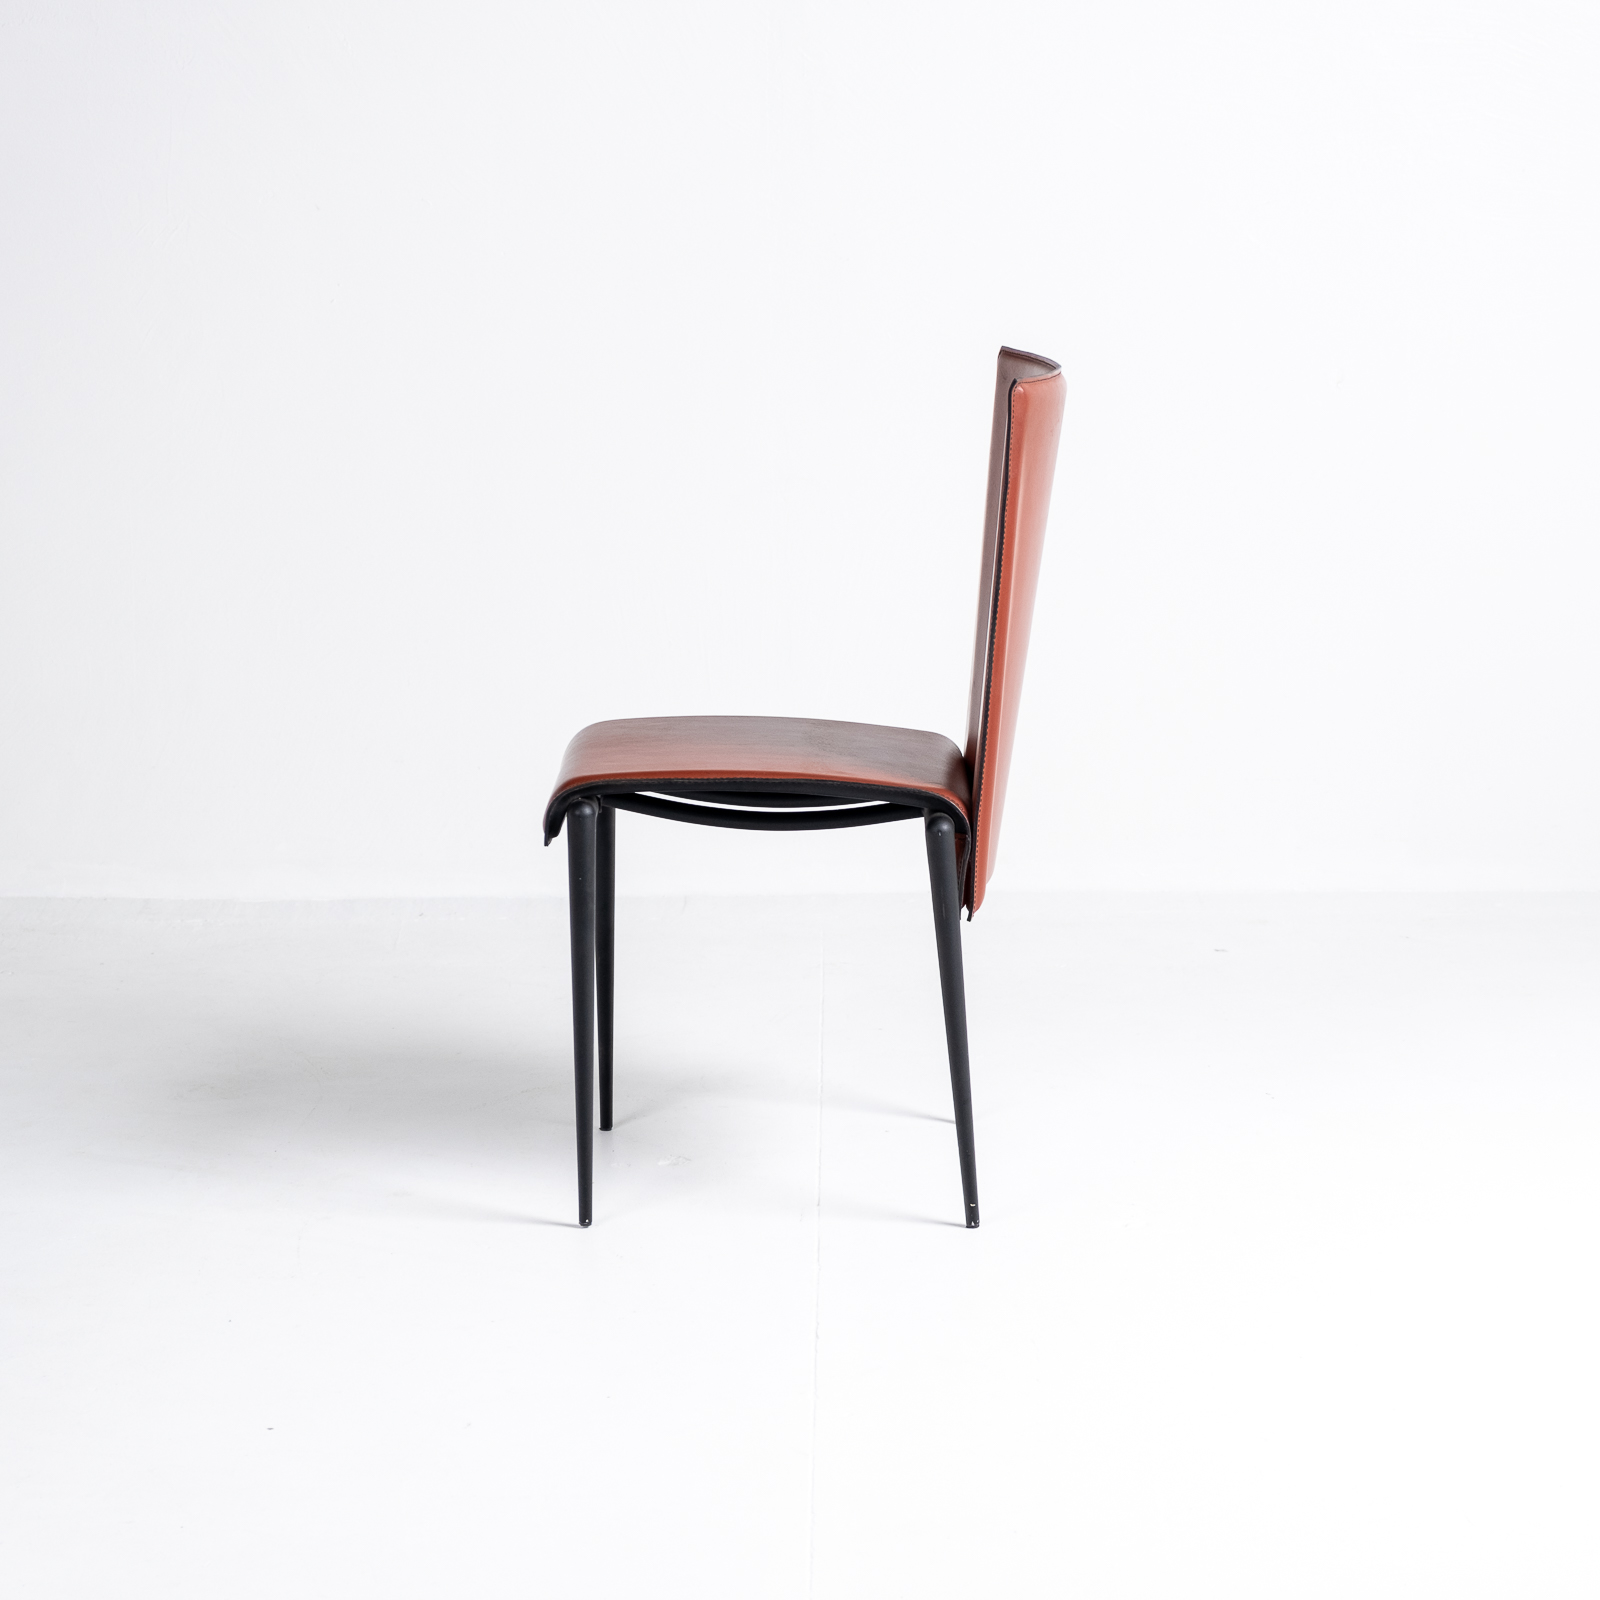 High Back Chair By Cidue In Red Leather, 1970s, Italy 01